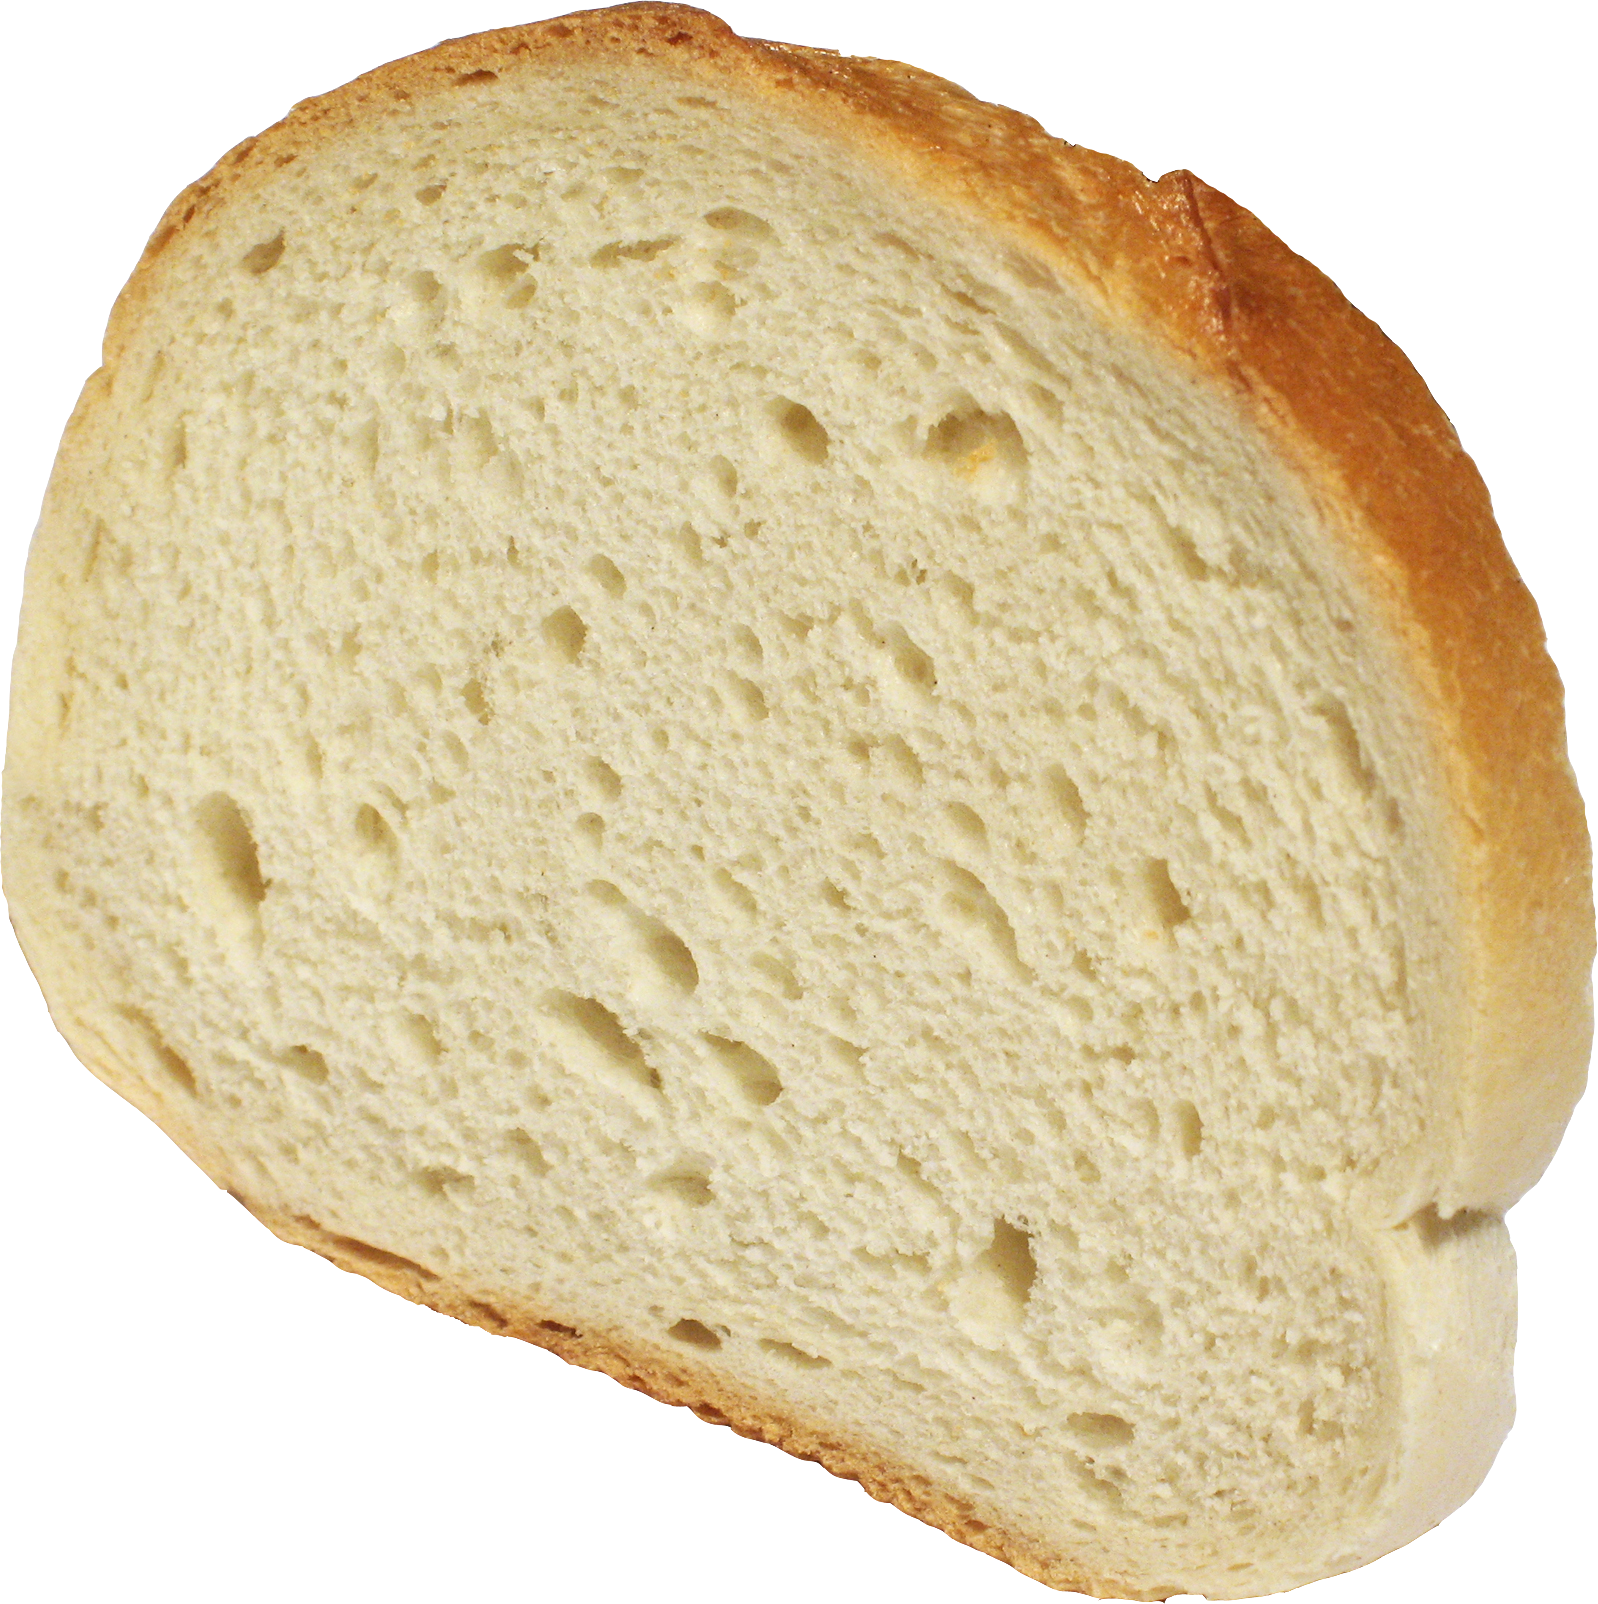 Png image purepng free. Clipart bread slice bread